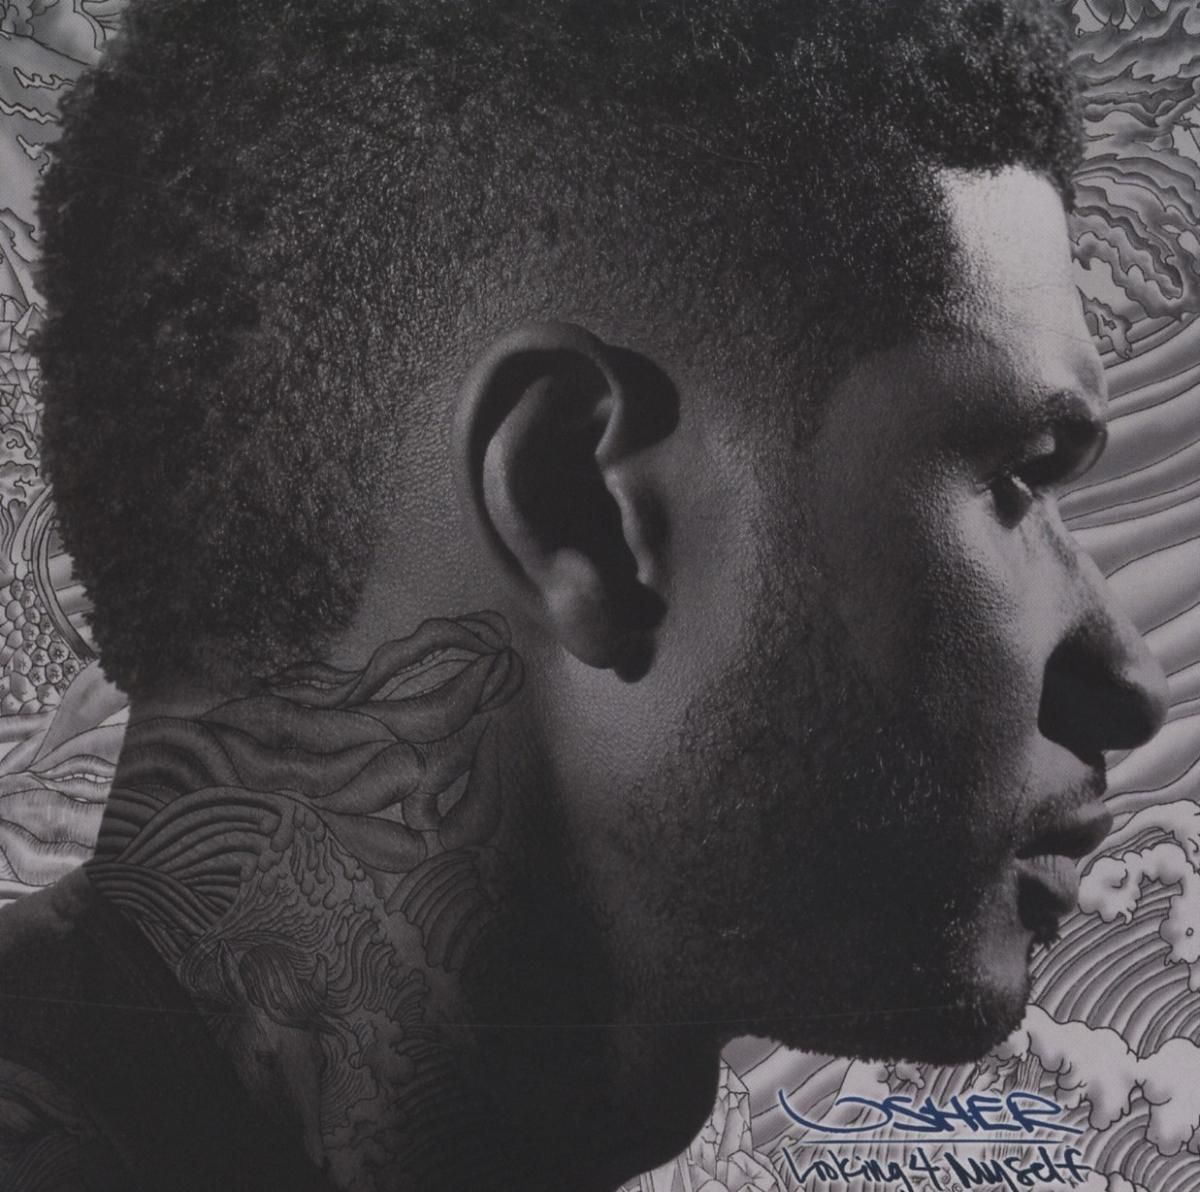 Album cover art usher looking myself music is in the